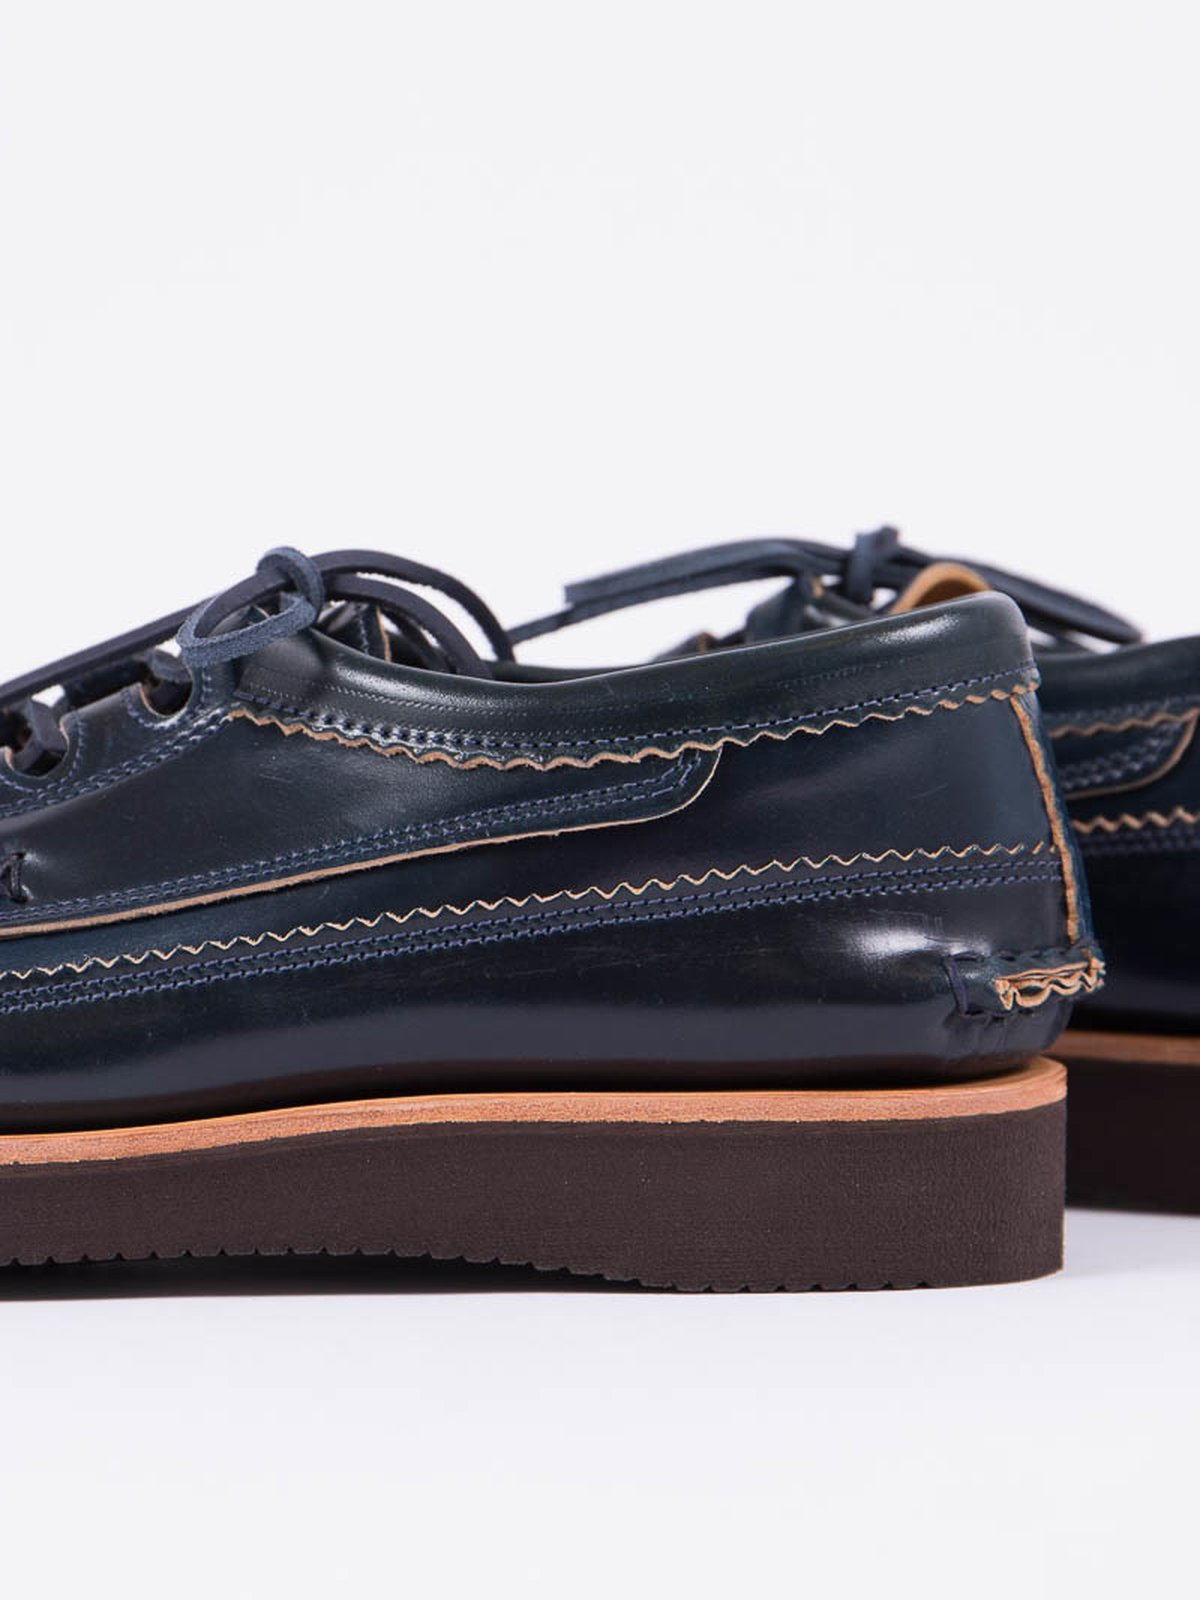 Navy Cordovan Ghillie Moc DB Shoe Exclusive - Image 3